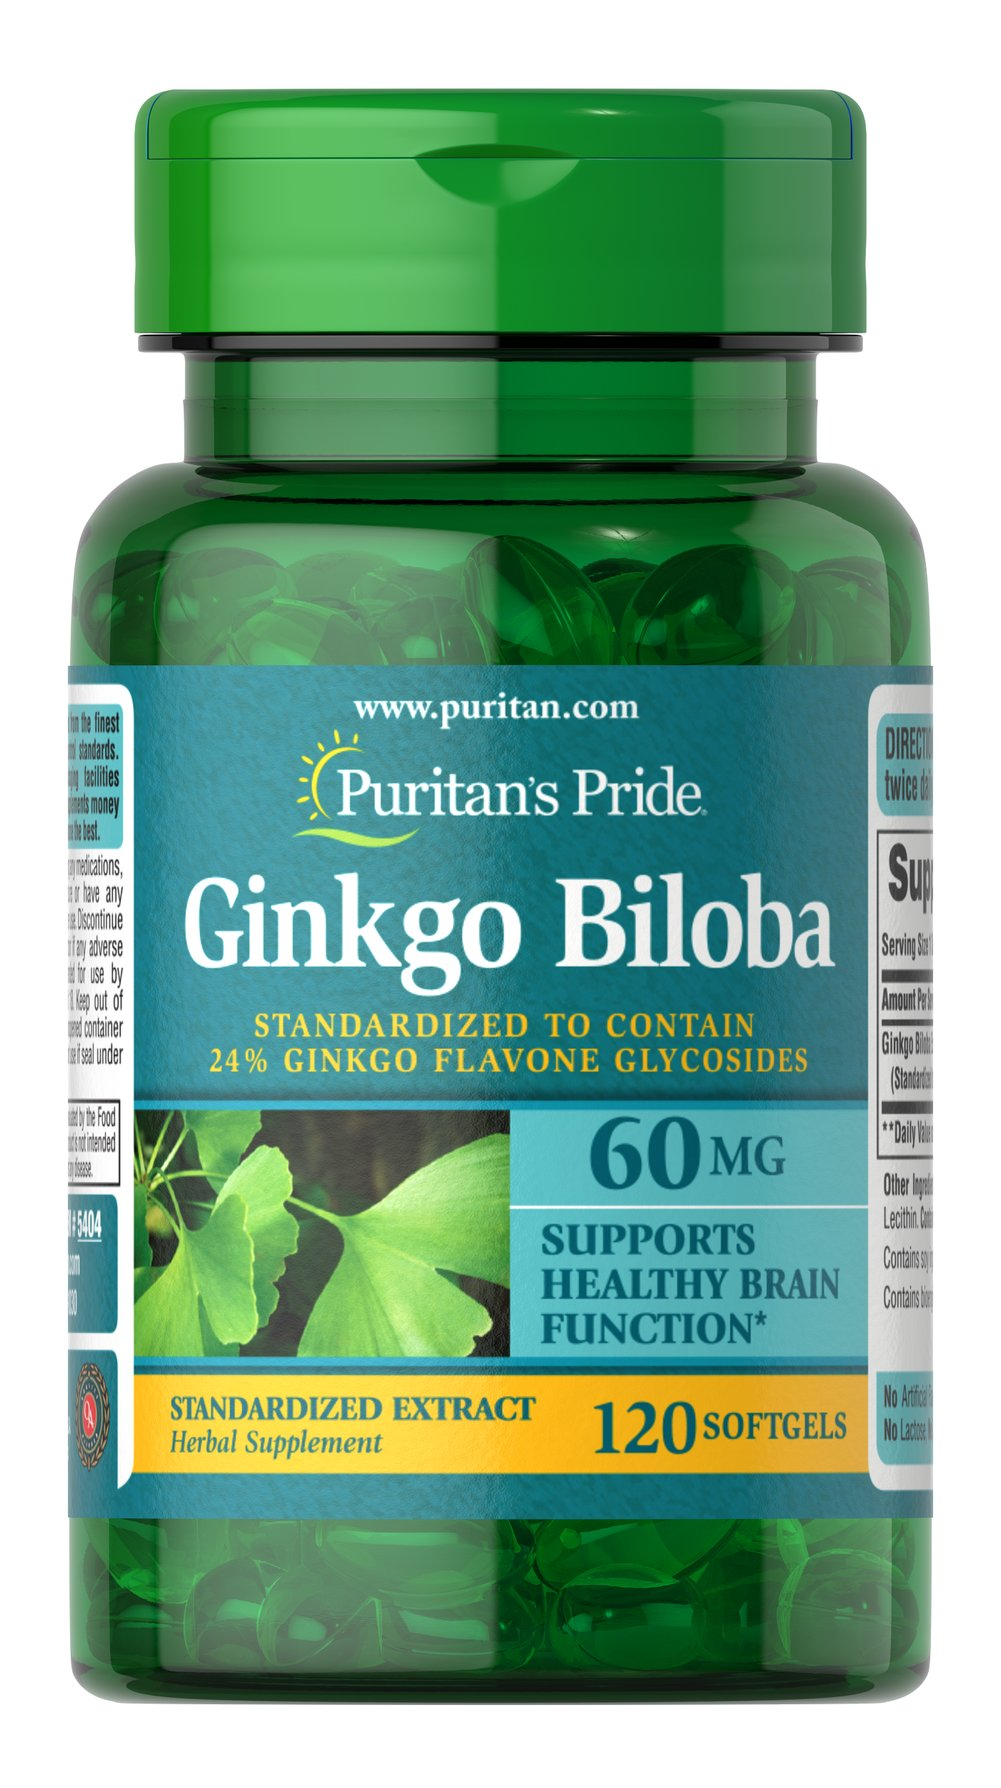 Ginkgo Biloba Standardized Extract 60 mg <p>Ginkgo helps to maintain peripheral circulation to the extremities.** In addition, Ginkgo helps support memory, especially occasional mild memory problems associated with aging.** Our Ginkgo Biloba consists of high-quality herbs standardized to contain 24% Ginkgo Flavone Glycosides</p> 120 Softgels 60 mg $10.49